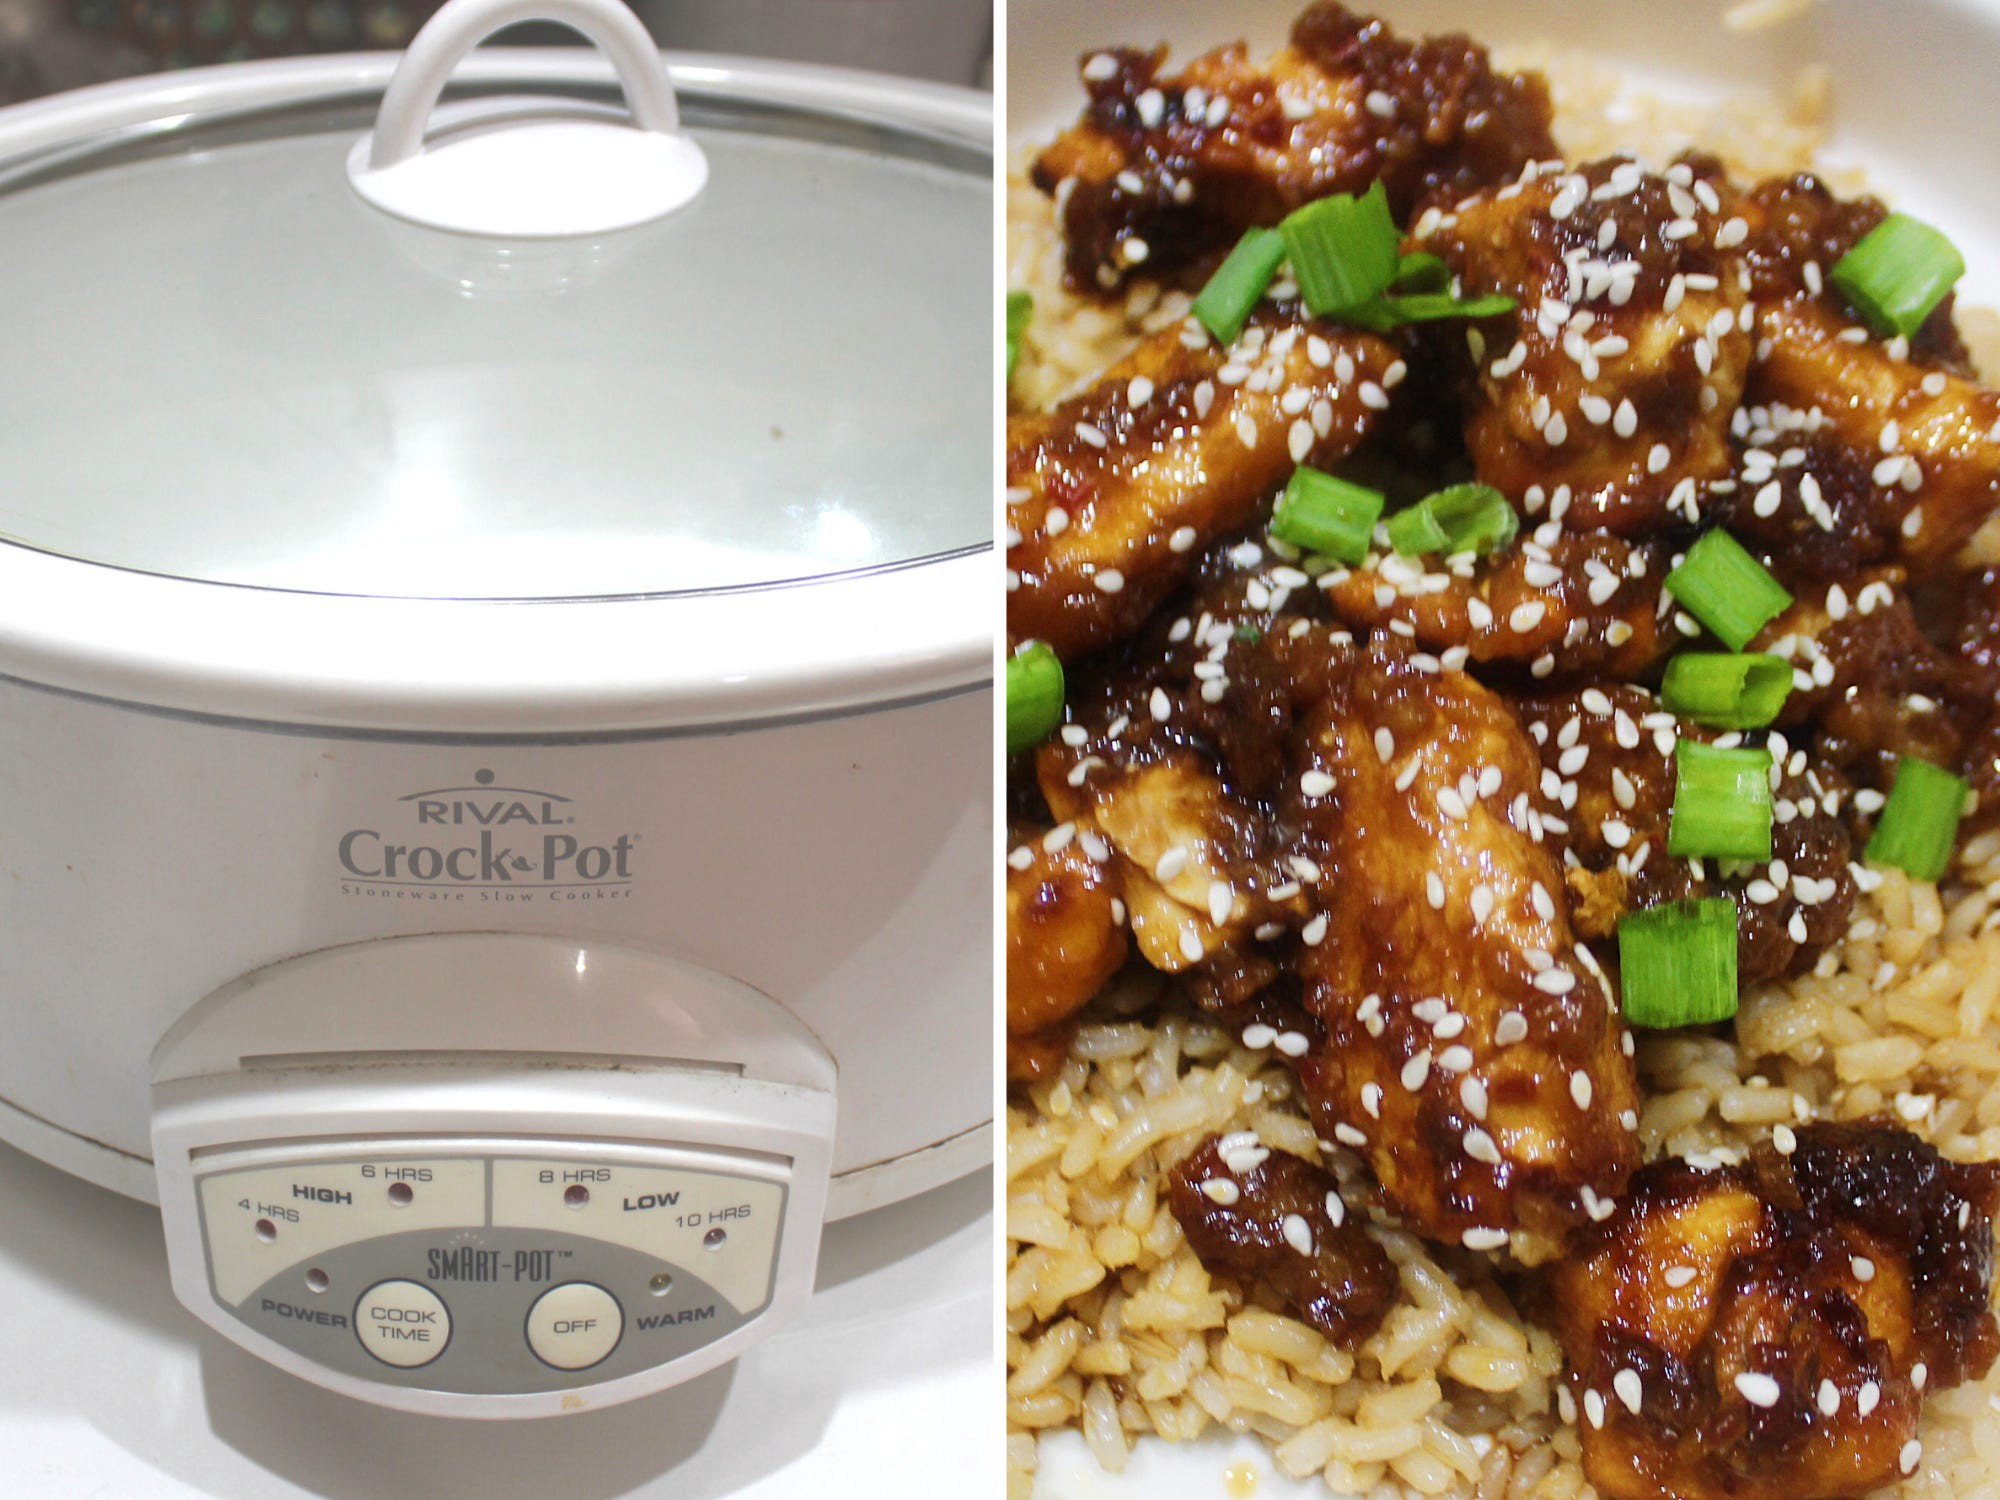 The slow cooker (left) and a meal (right).